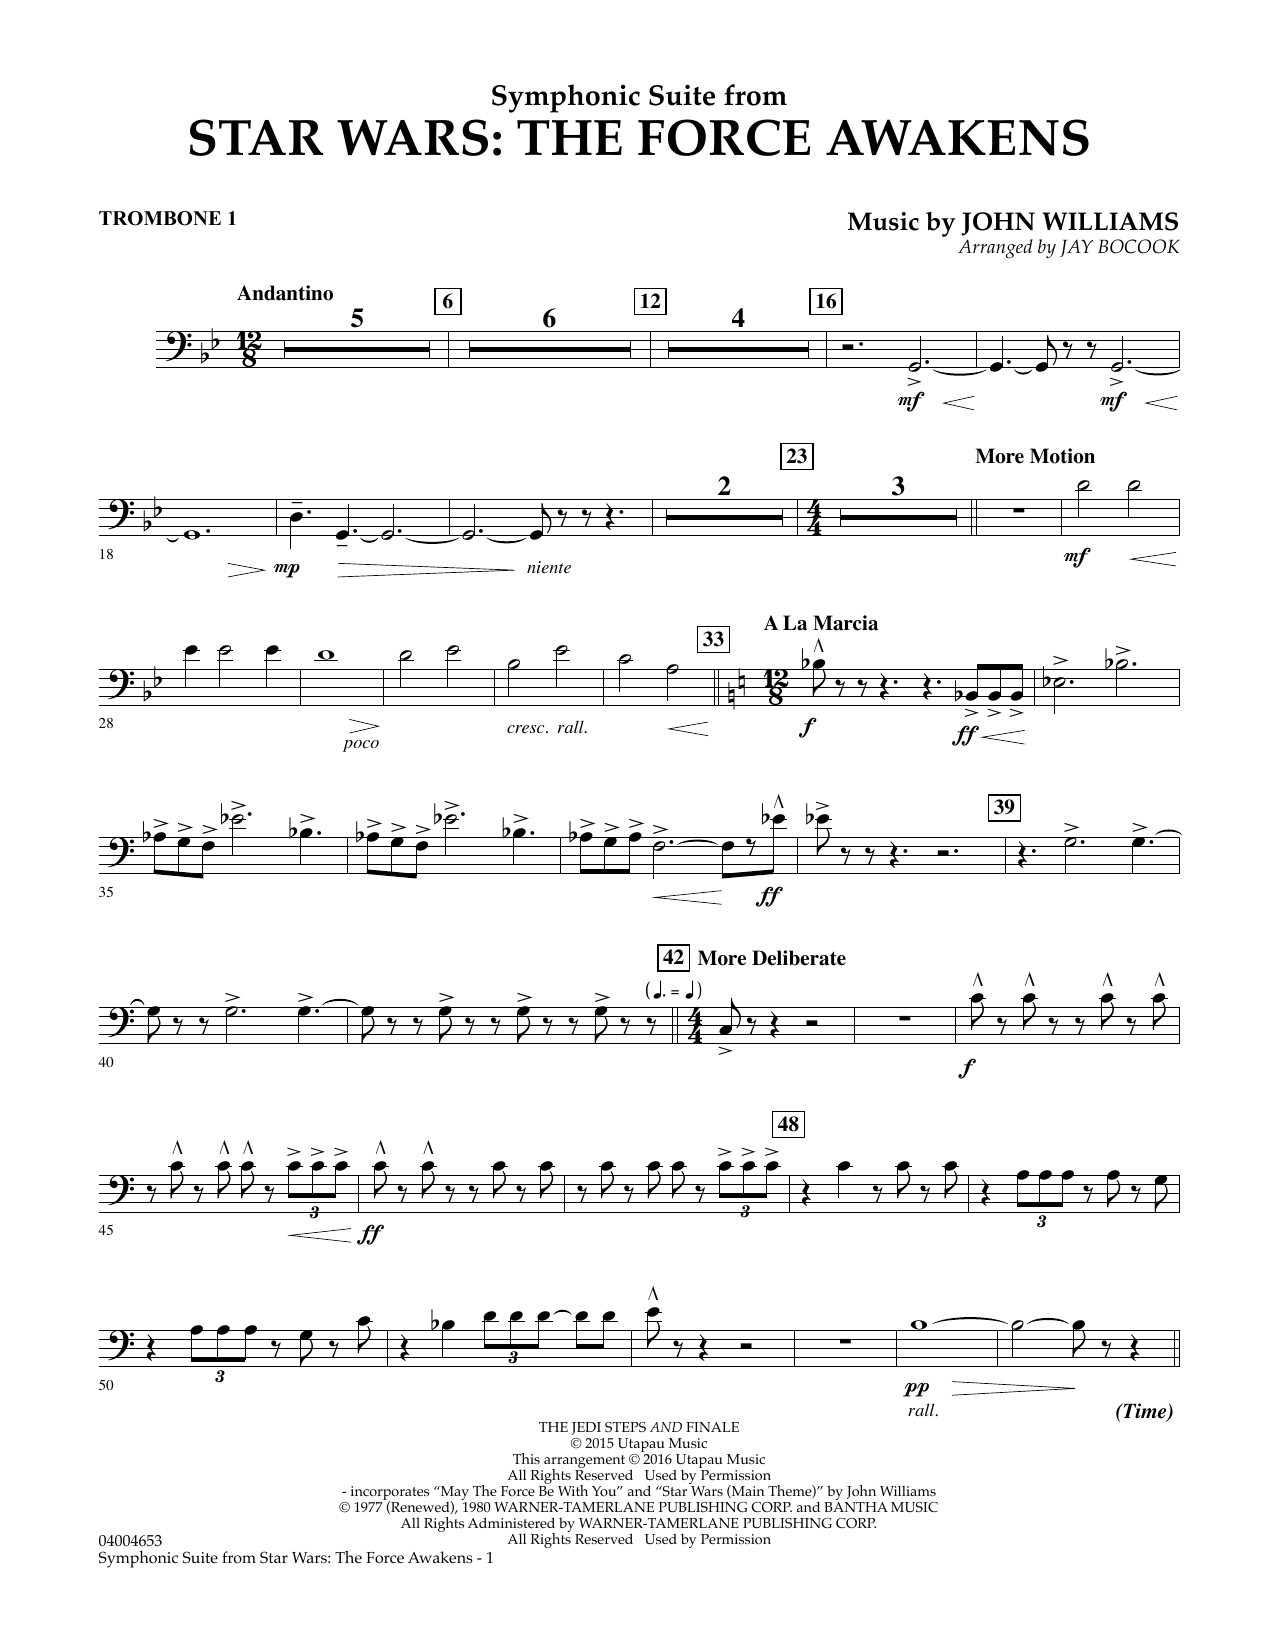 John Williams - Symphonic Suite from Star Wars: The Force Awakens - Trombone 1